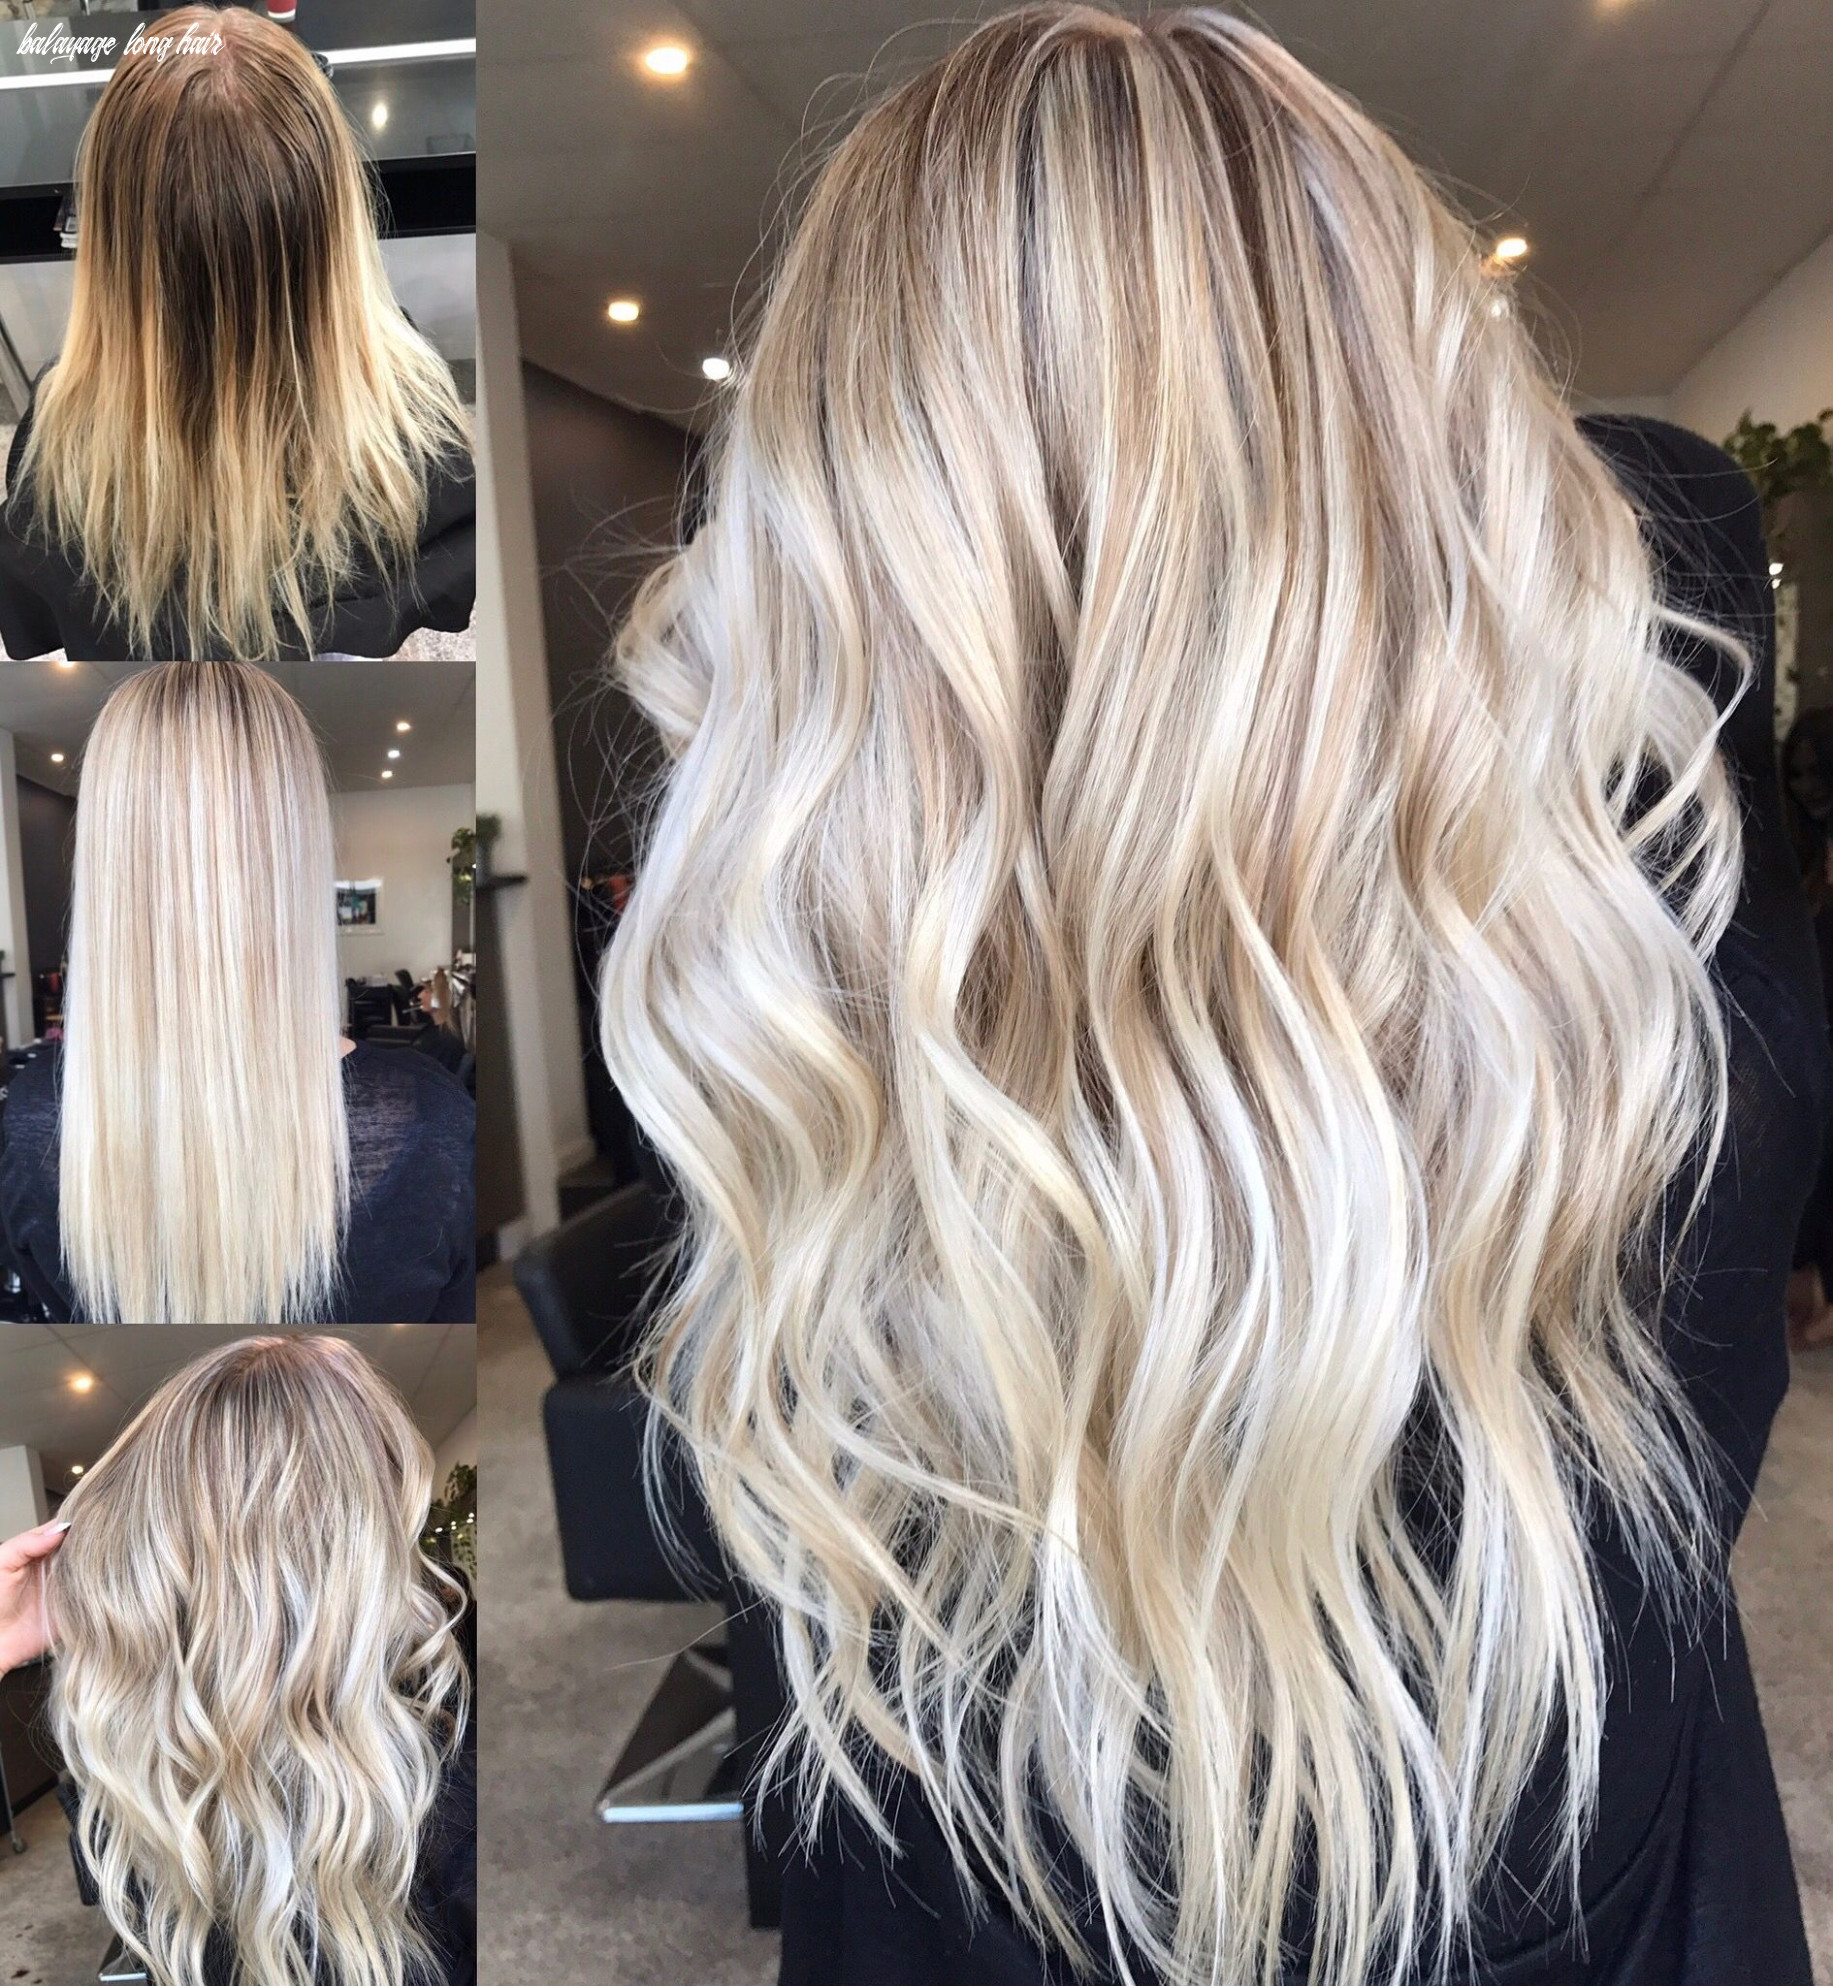 Hair inspiration ✔️ instagram @hairbykaitlinjade blonde balayage